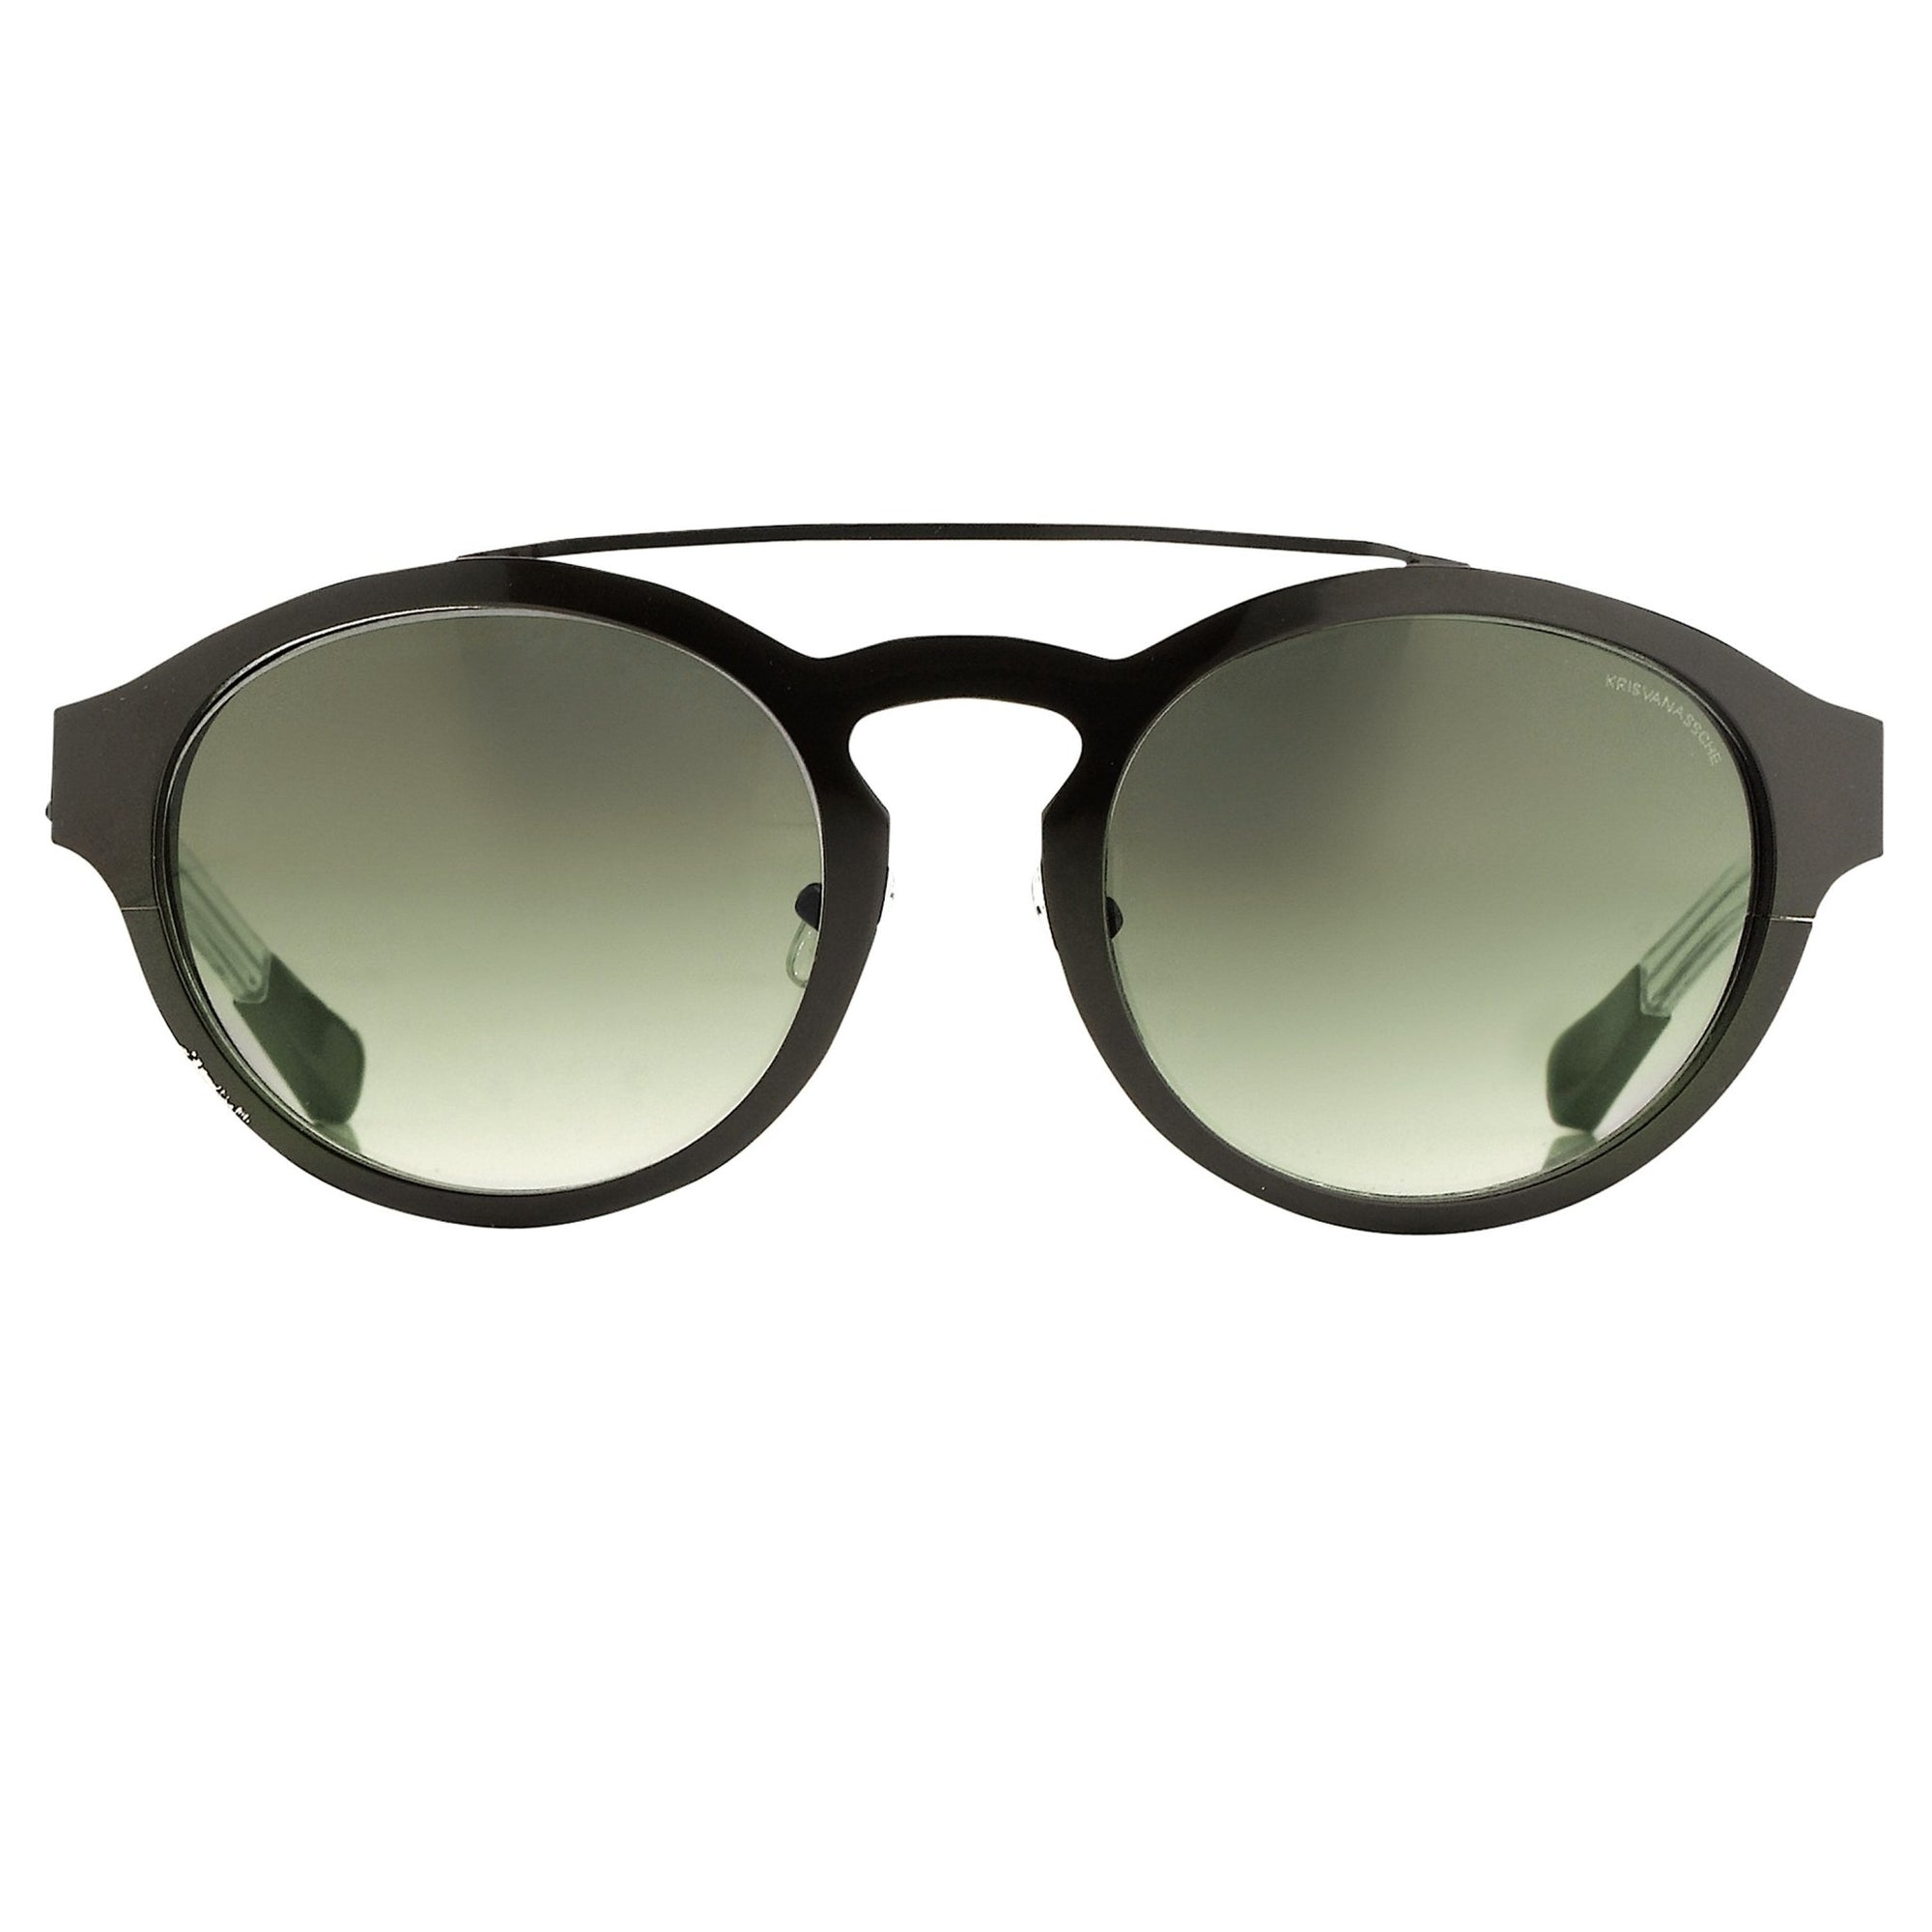 Kris Van Assche Sunglasses Unisex With Oval Black Metal and Green Graduated Lenses - KVA4C2SUN - Watches & Crystals